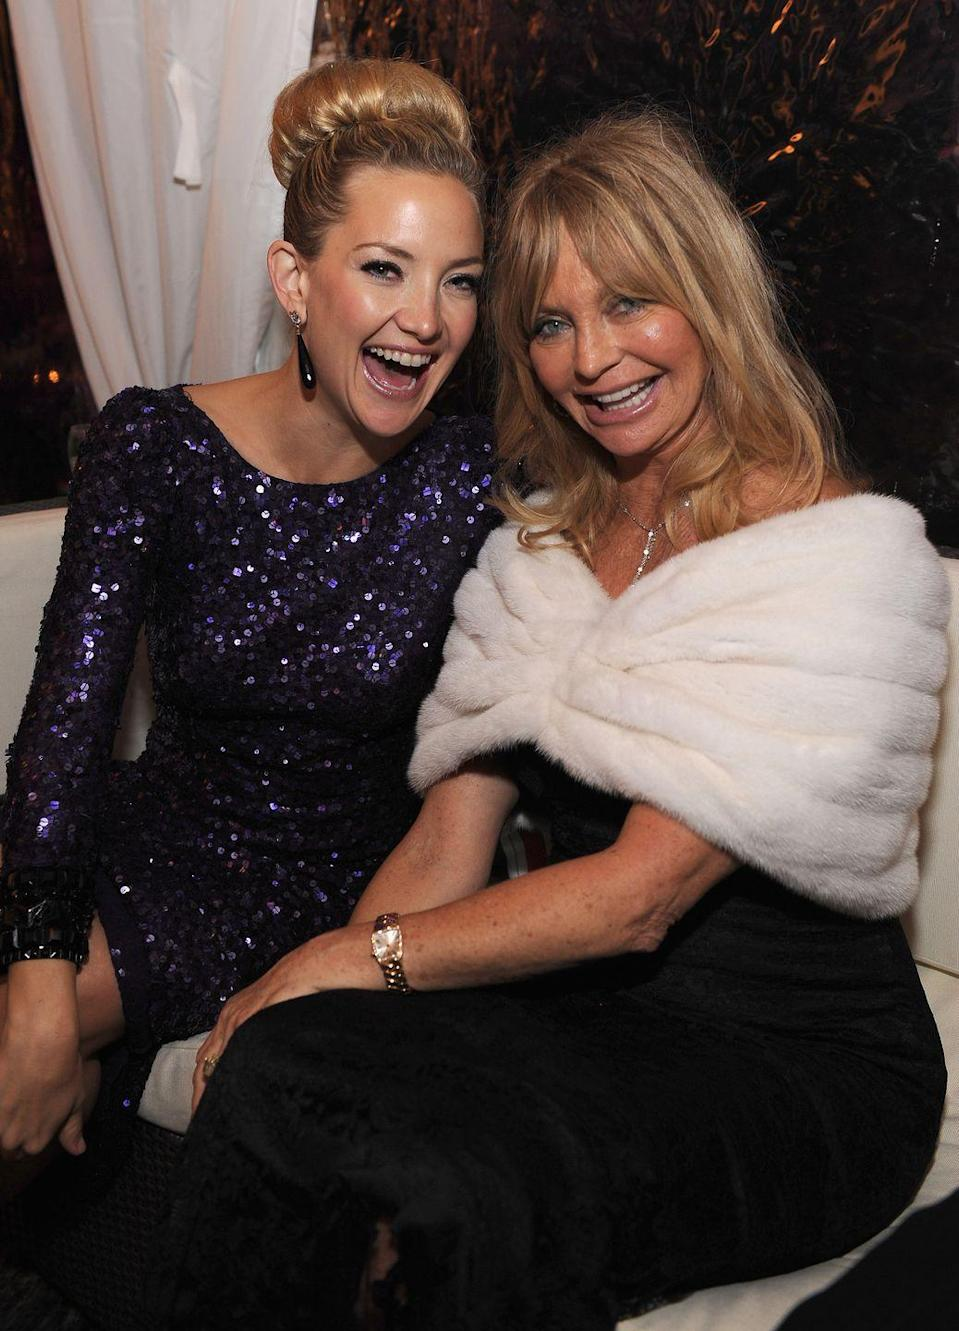 <p>Goldie Hawn passed her signature million dollar smile down to her daughter, Kate Hudson. The duo share a strong resemblance, which is even more apparent in their acting roles. </p>